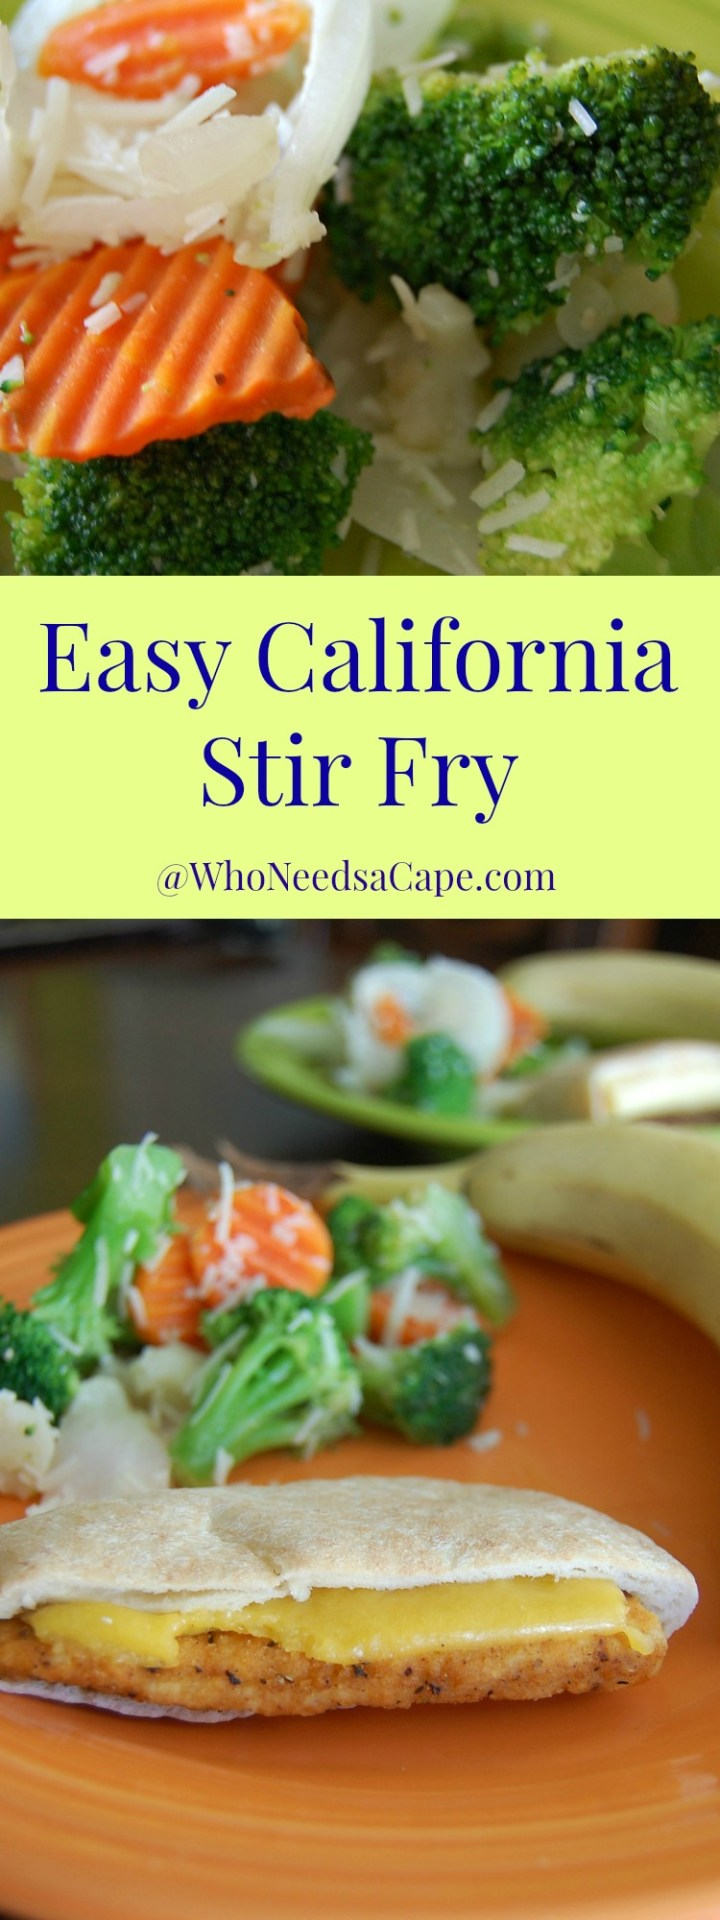 Easy California Stir Fry is a 20 minute side dish to make! It's Healthy and Yummy!